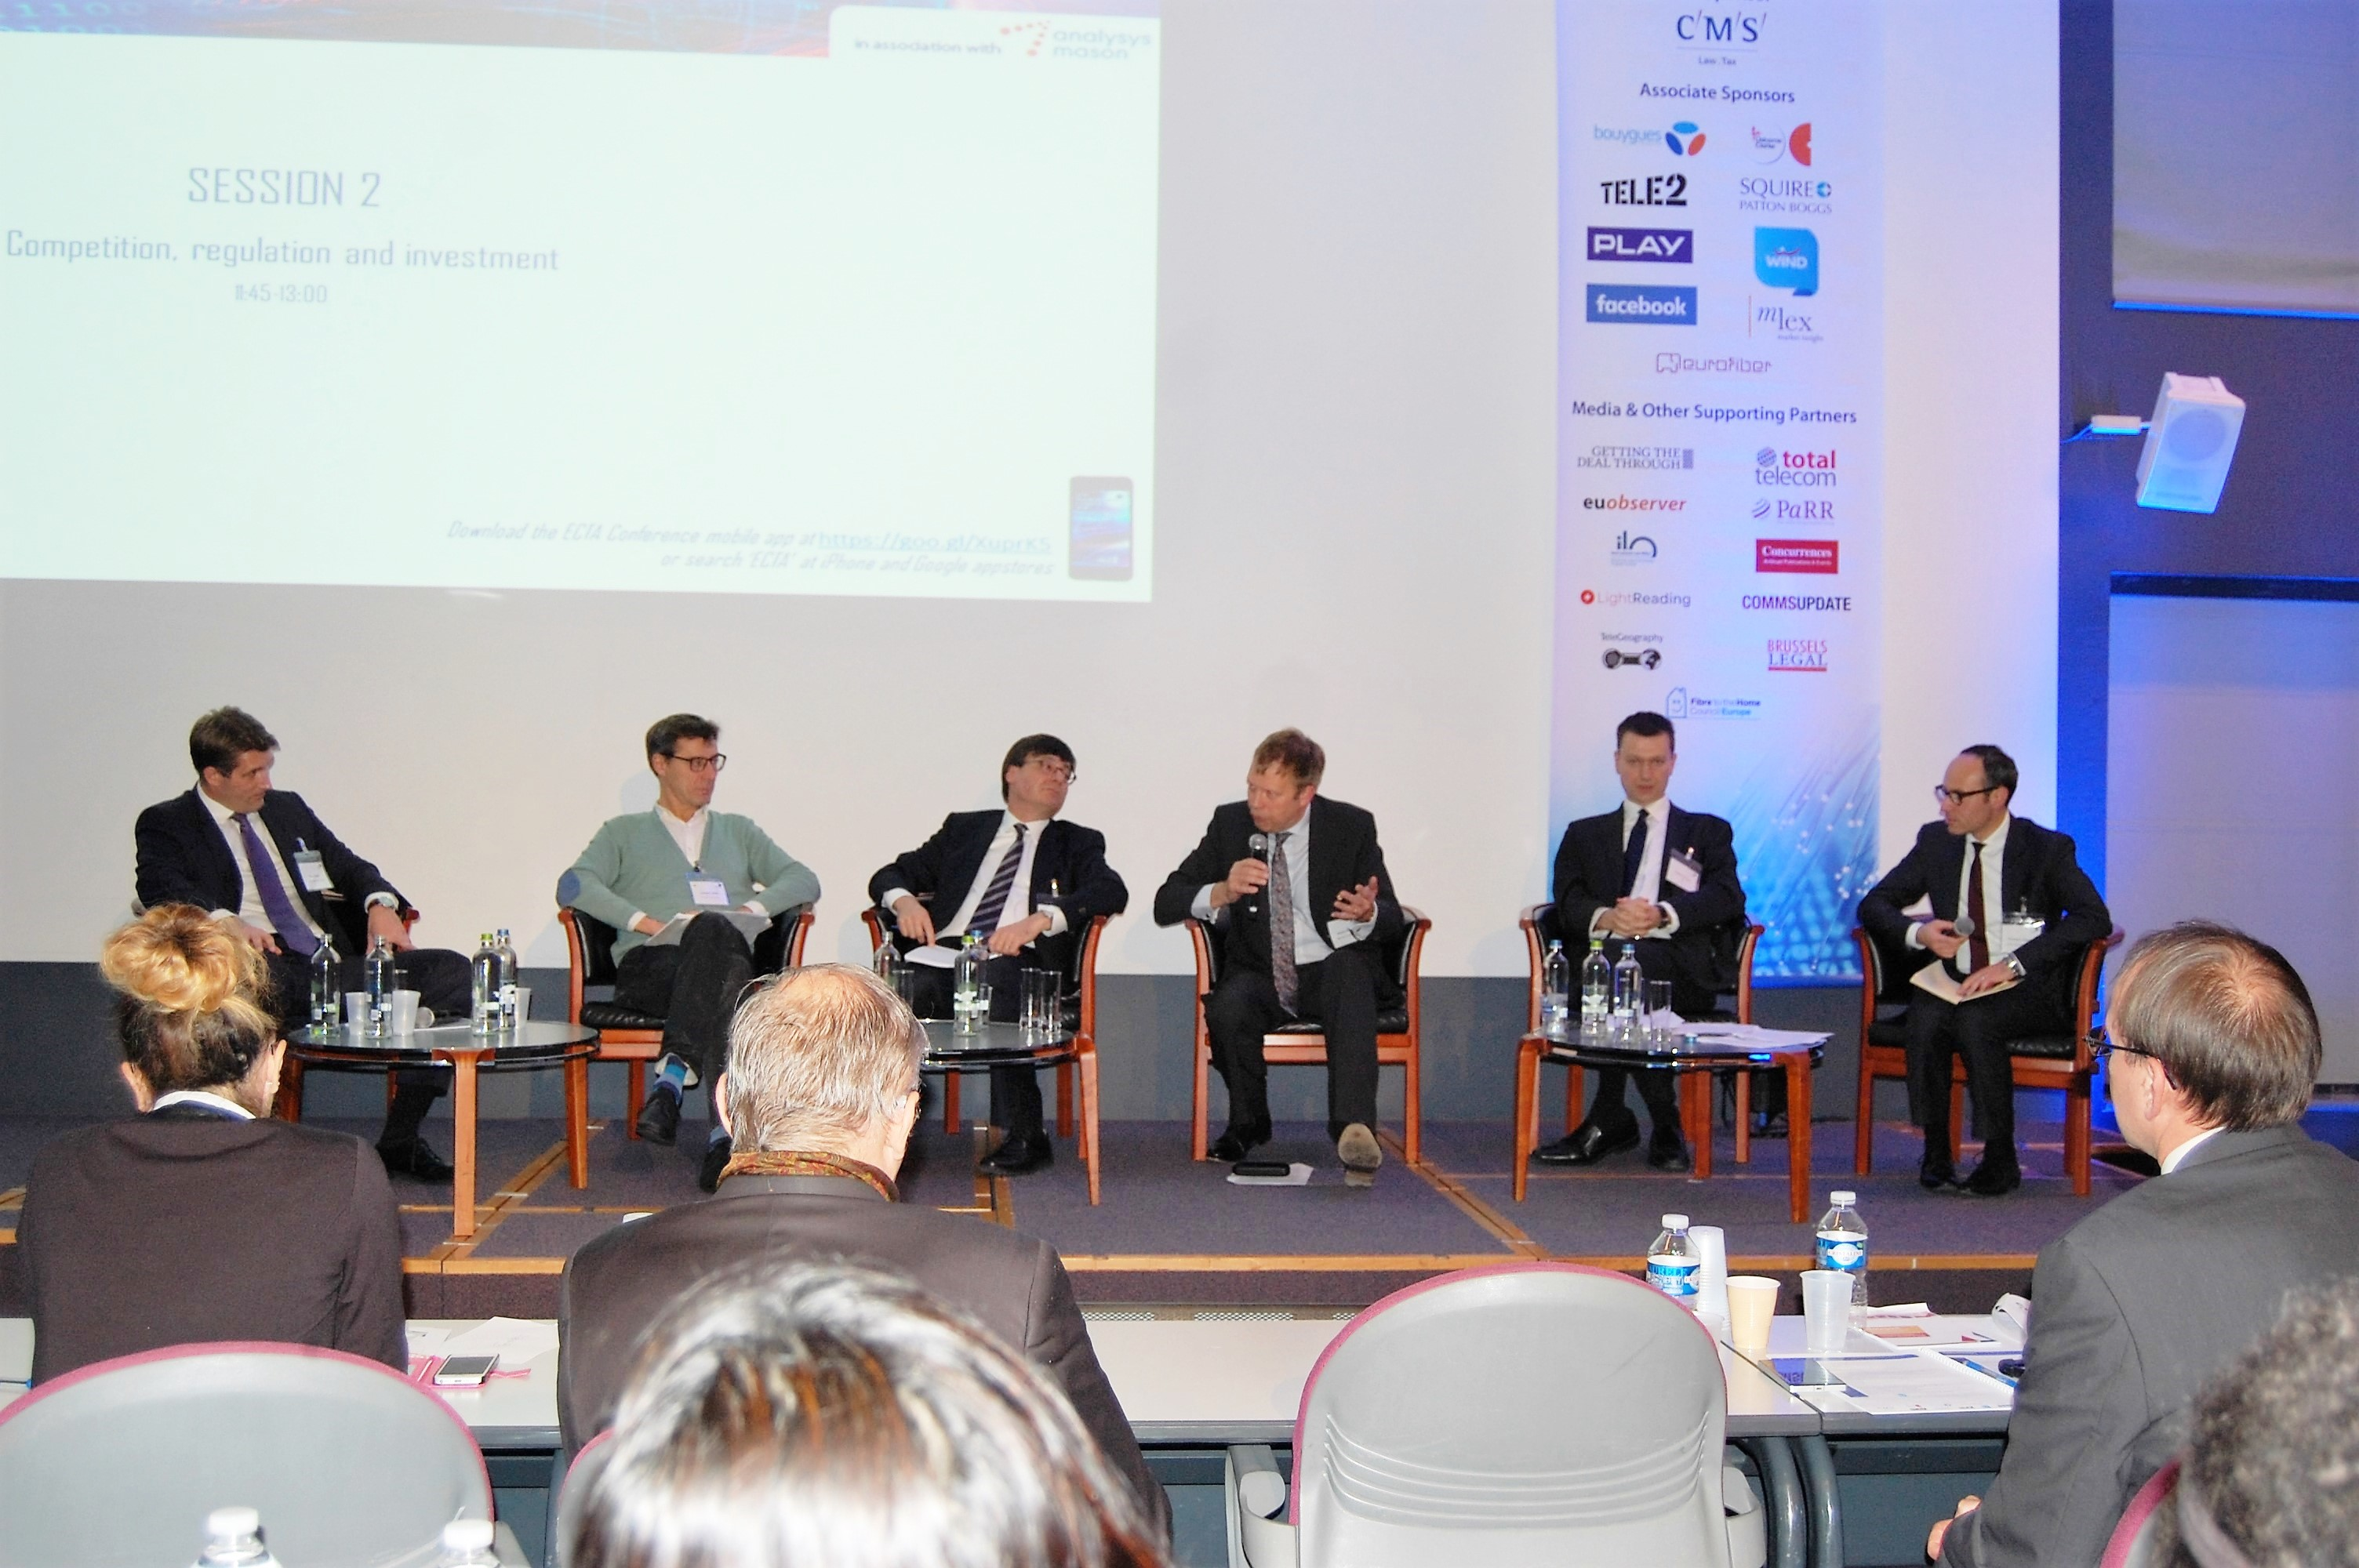 Competition regulation investment panel